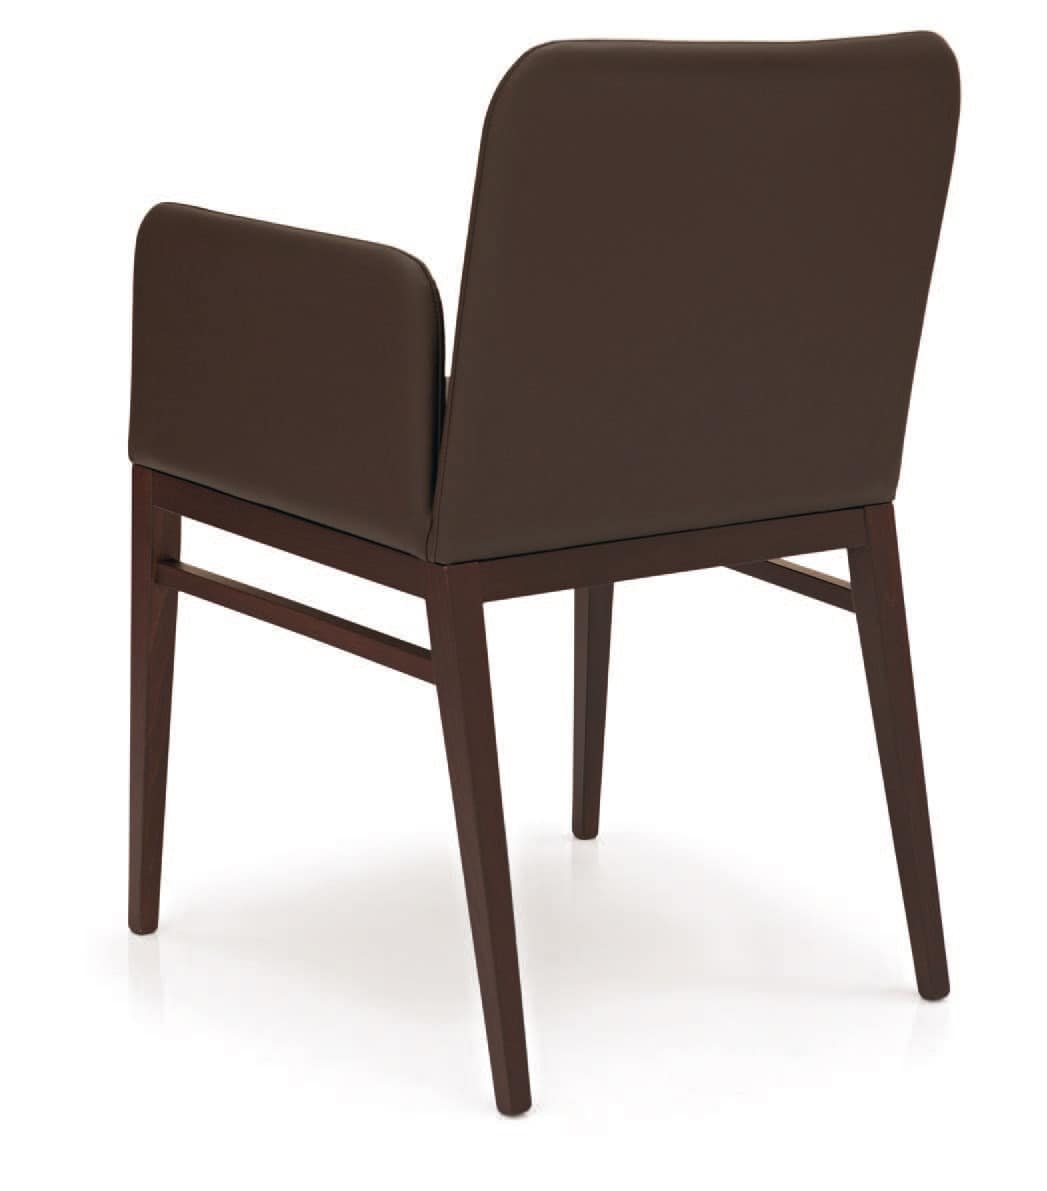 modern leather dining chairs with arms sit stand chair reviews upholstered armchair in wood for residential and contract